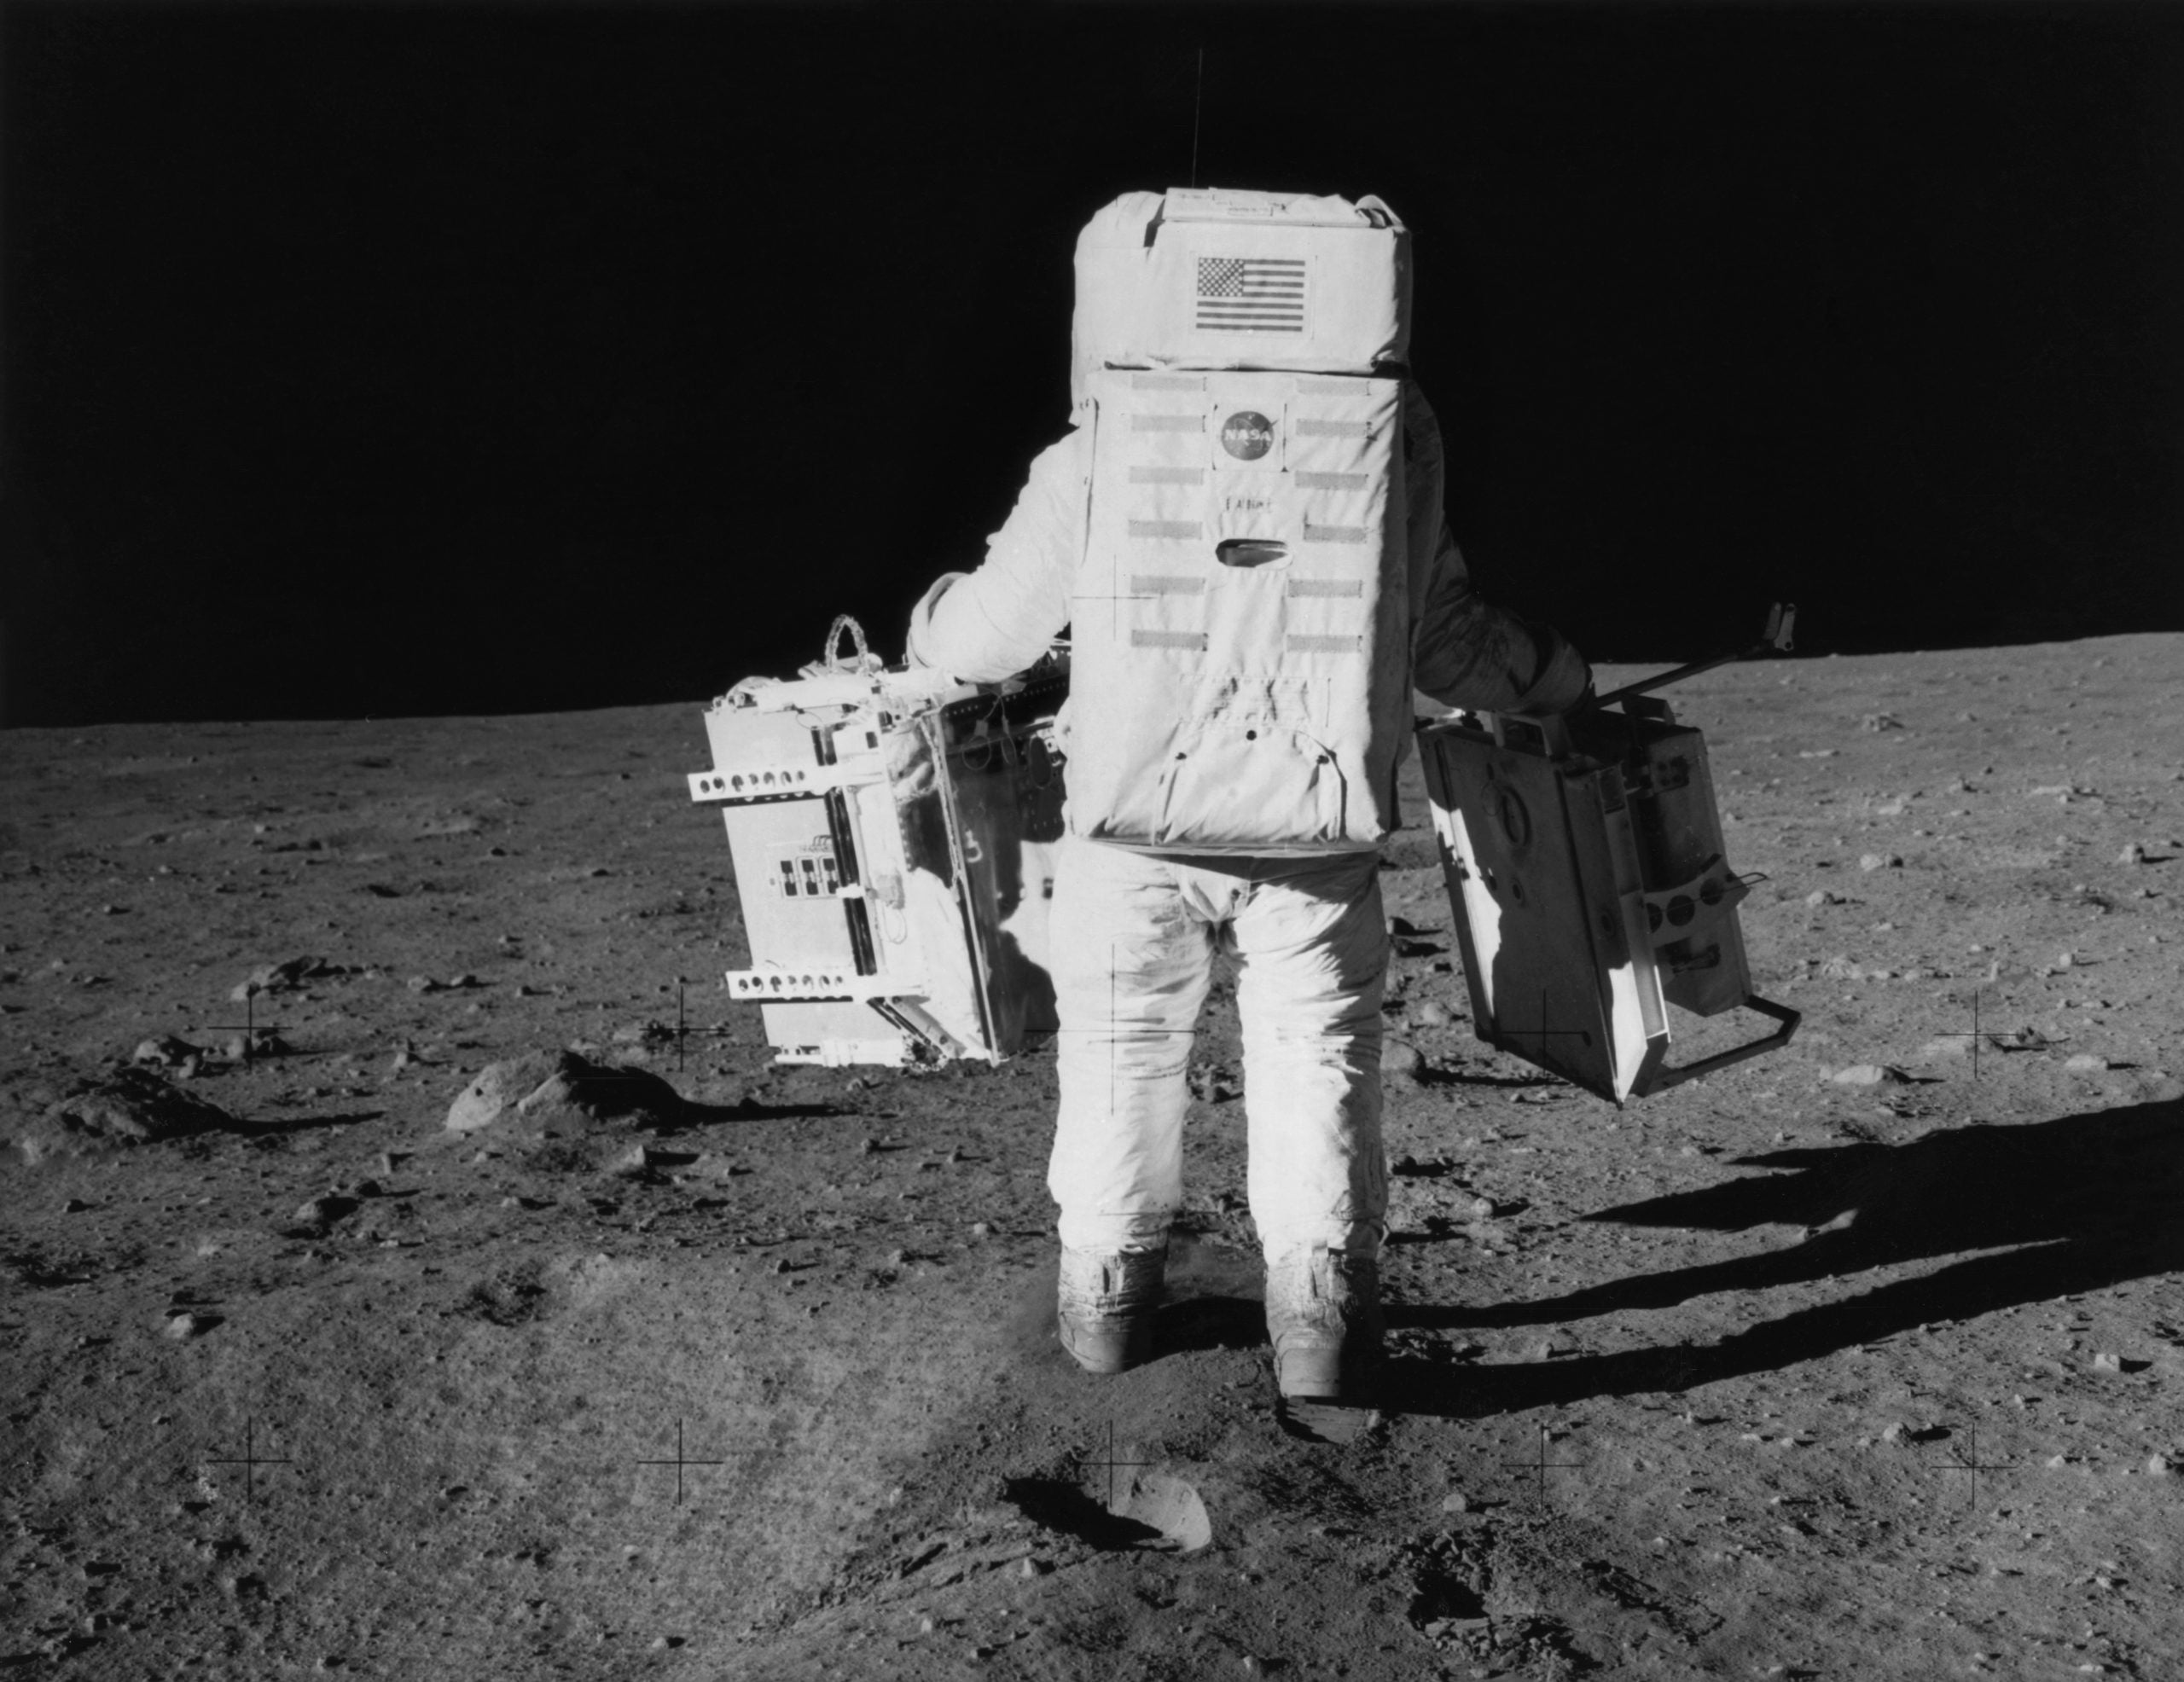 Fifty years on, is there any point in returning to the moon?